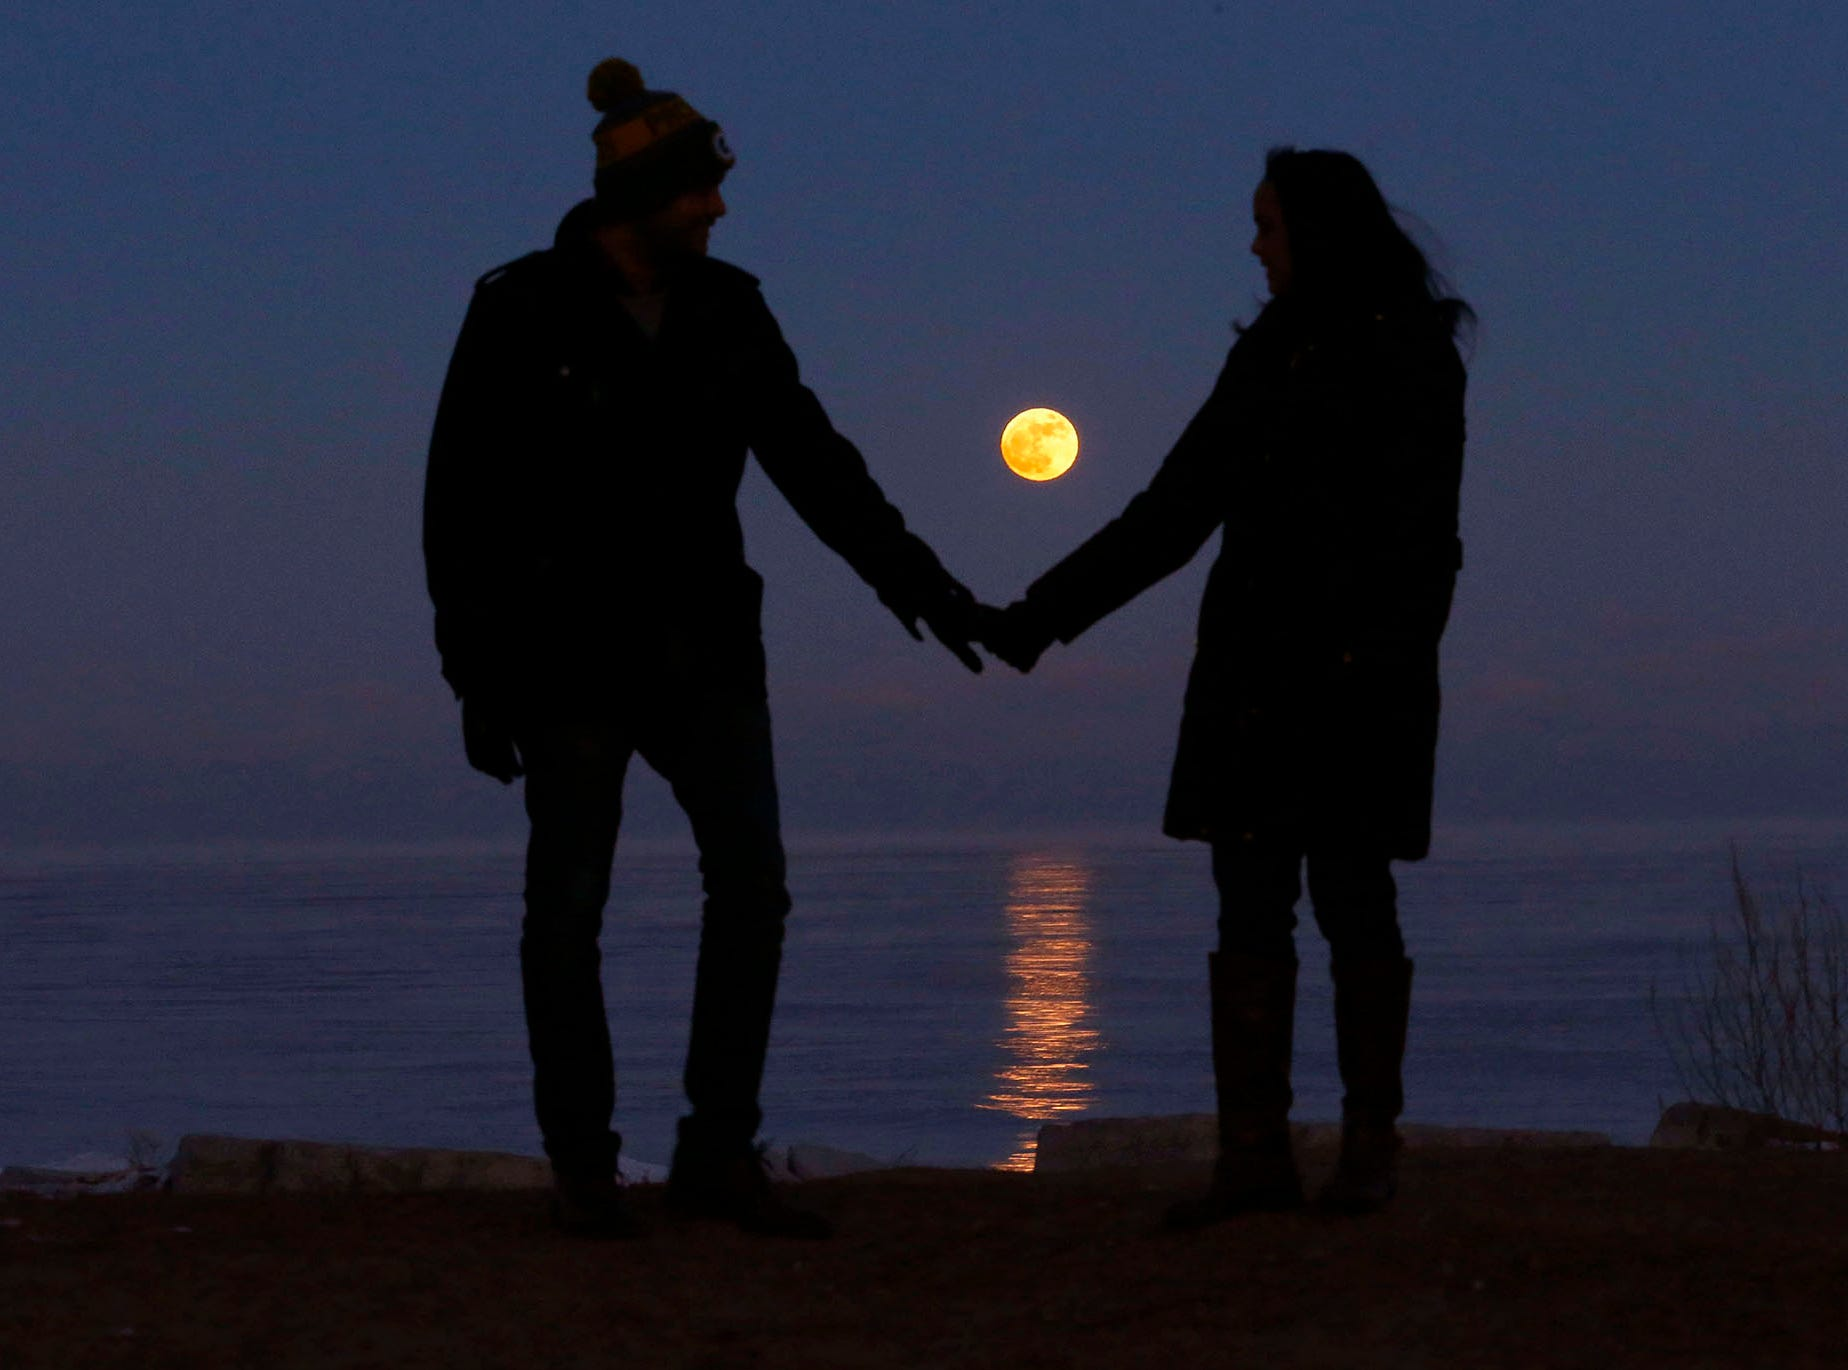 Badrinath Uppalapati, left, and his girlfriend, Bhargavi Tadinada, both from Milwaukee, pause for a moment after checking out the supermoon off the shores of Lake Michigan near Bradford Beach in Milwaukee Jan. 1, 2018.